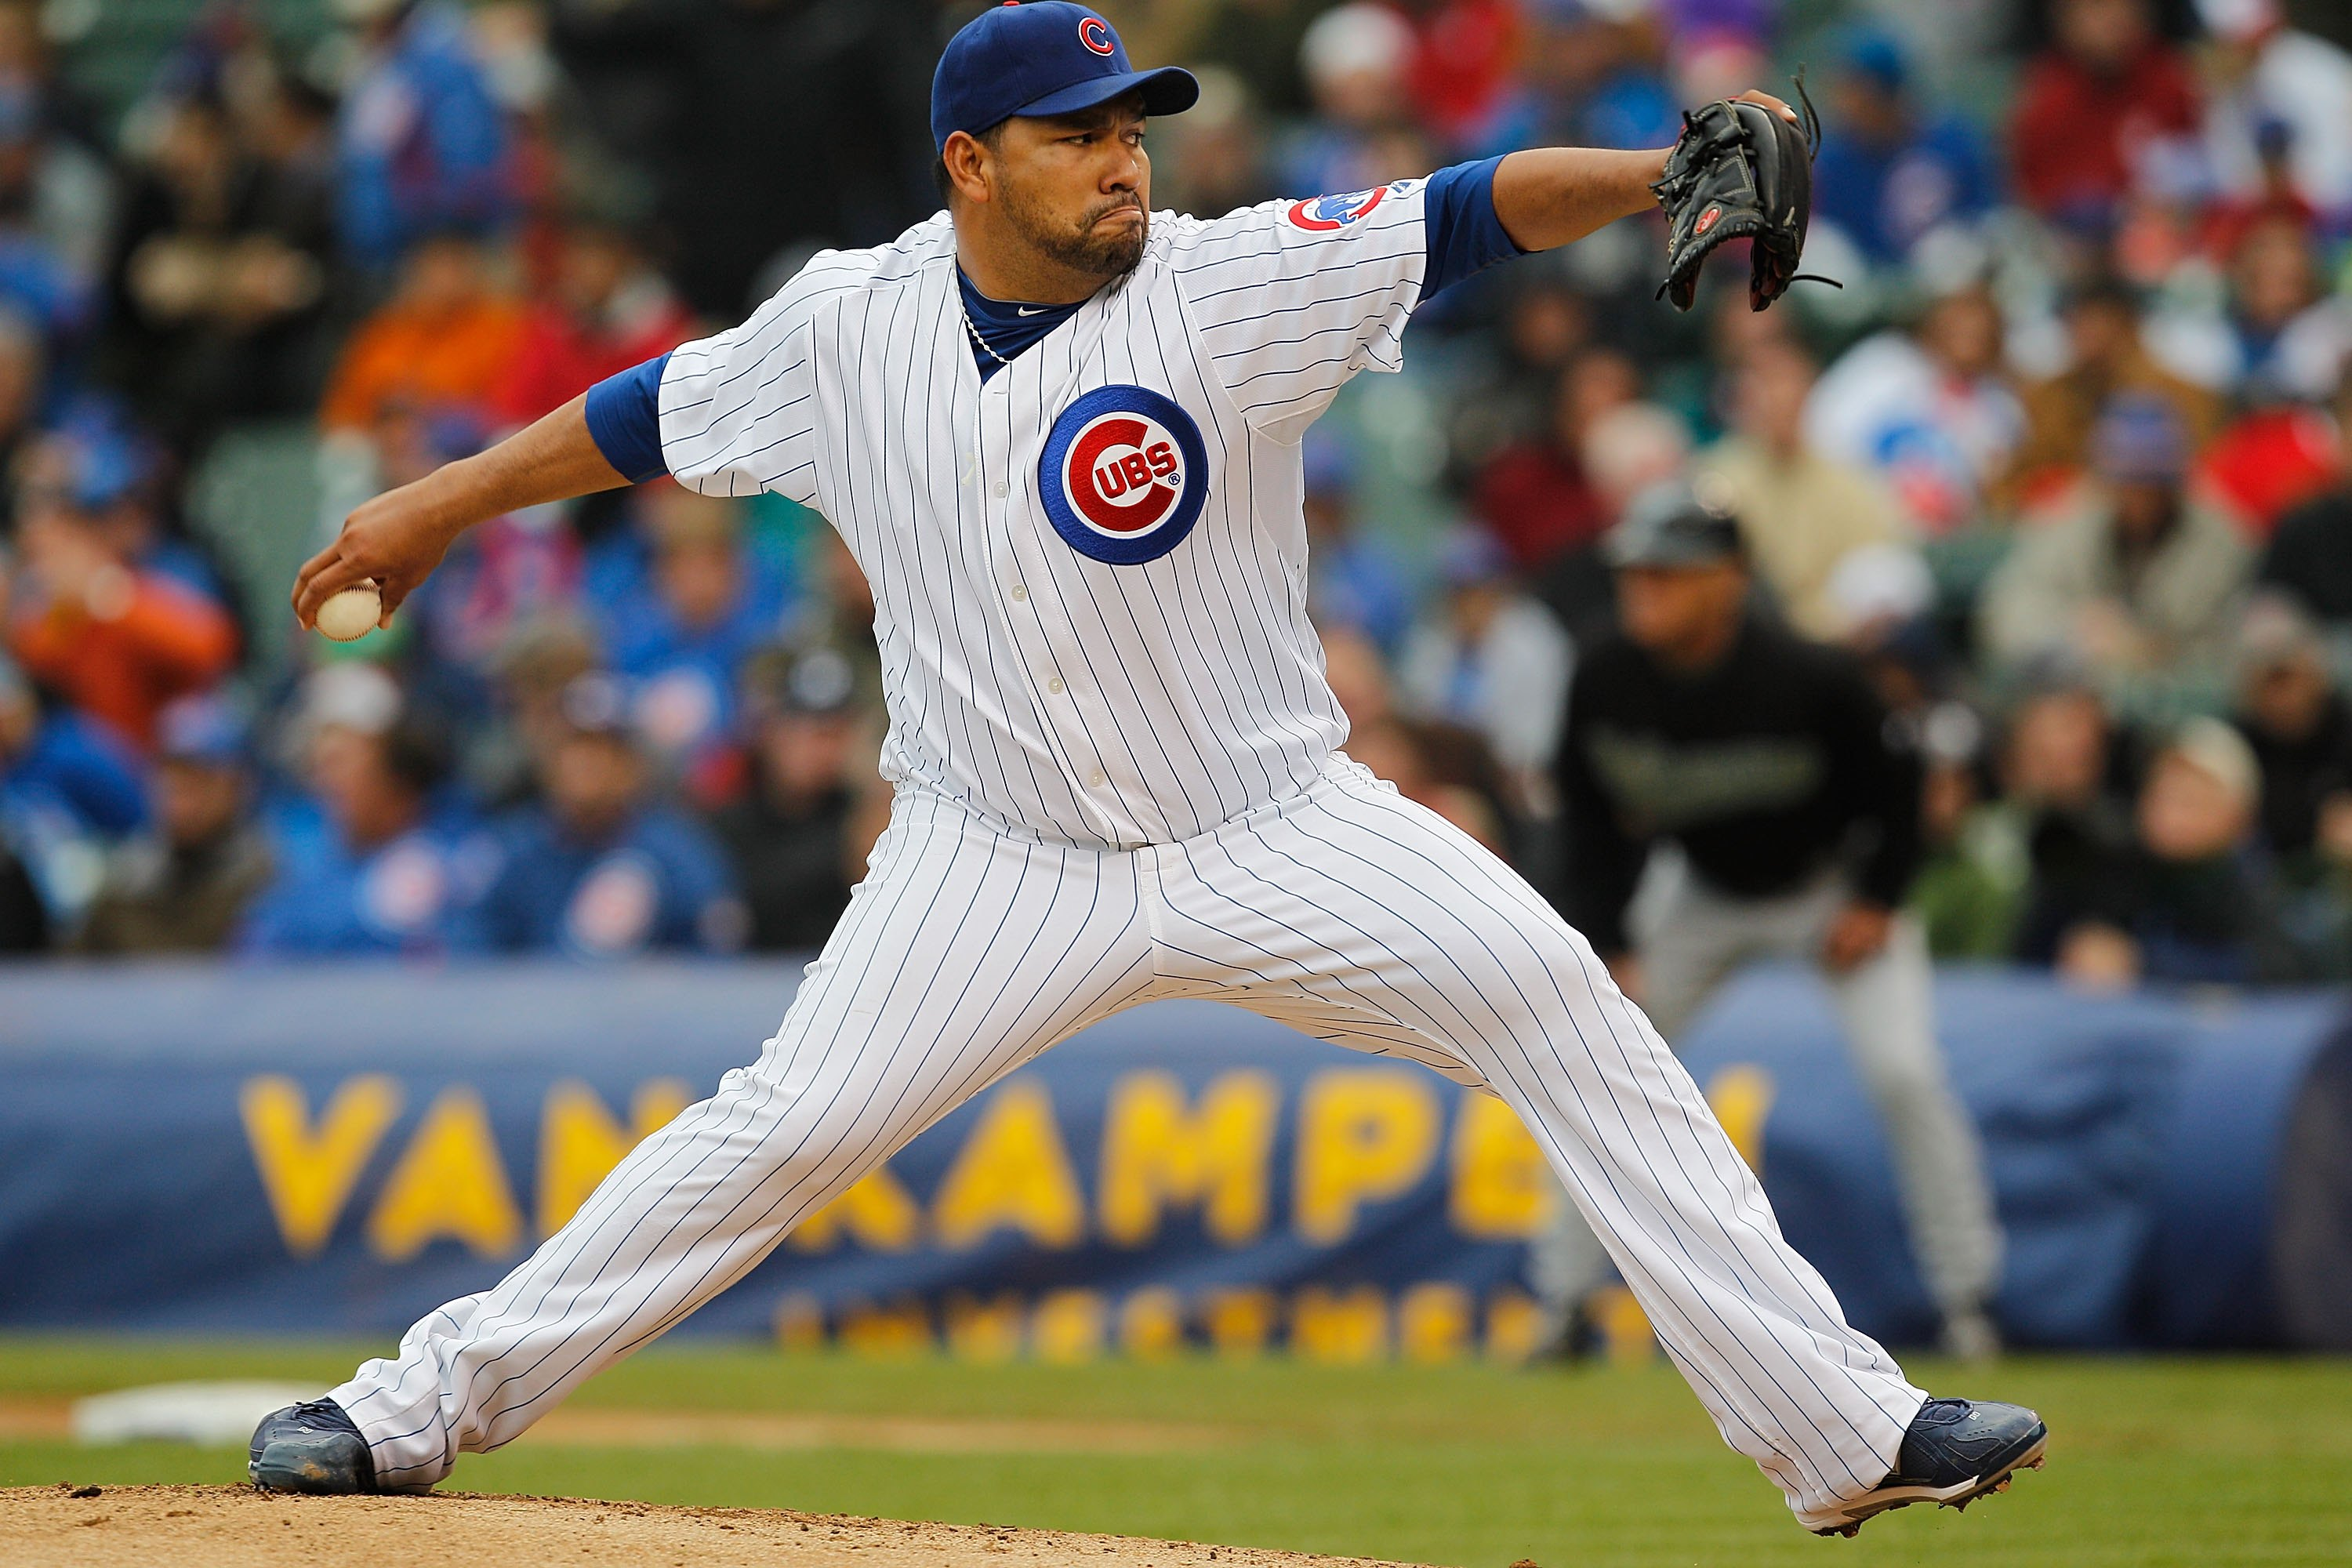 CHICAGO - MAY 12: Starting pitcher Carlos Silva #52 of the Chicago Cubs delivers the ball against the Florida Marlins at Wrigley Field on May 12, 2010 in Chicago, Illinois. The Cubs defeated the Marlins 4-3.  (Photo by Jonathan Daniel/Getty Images)